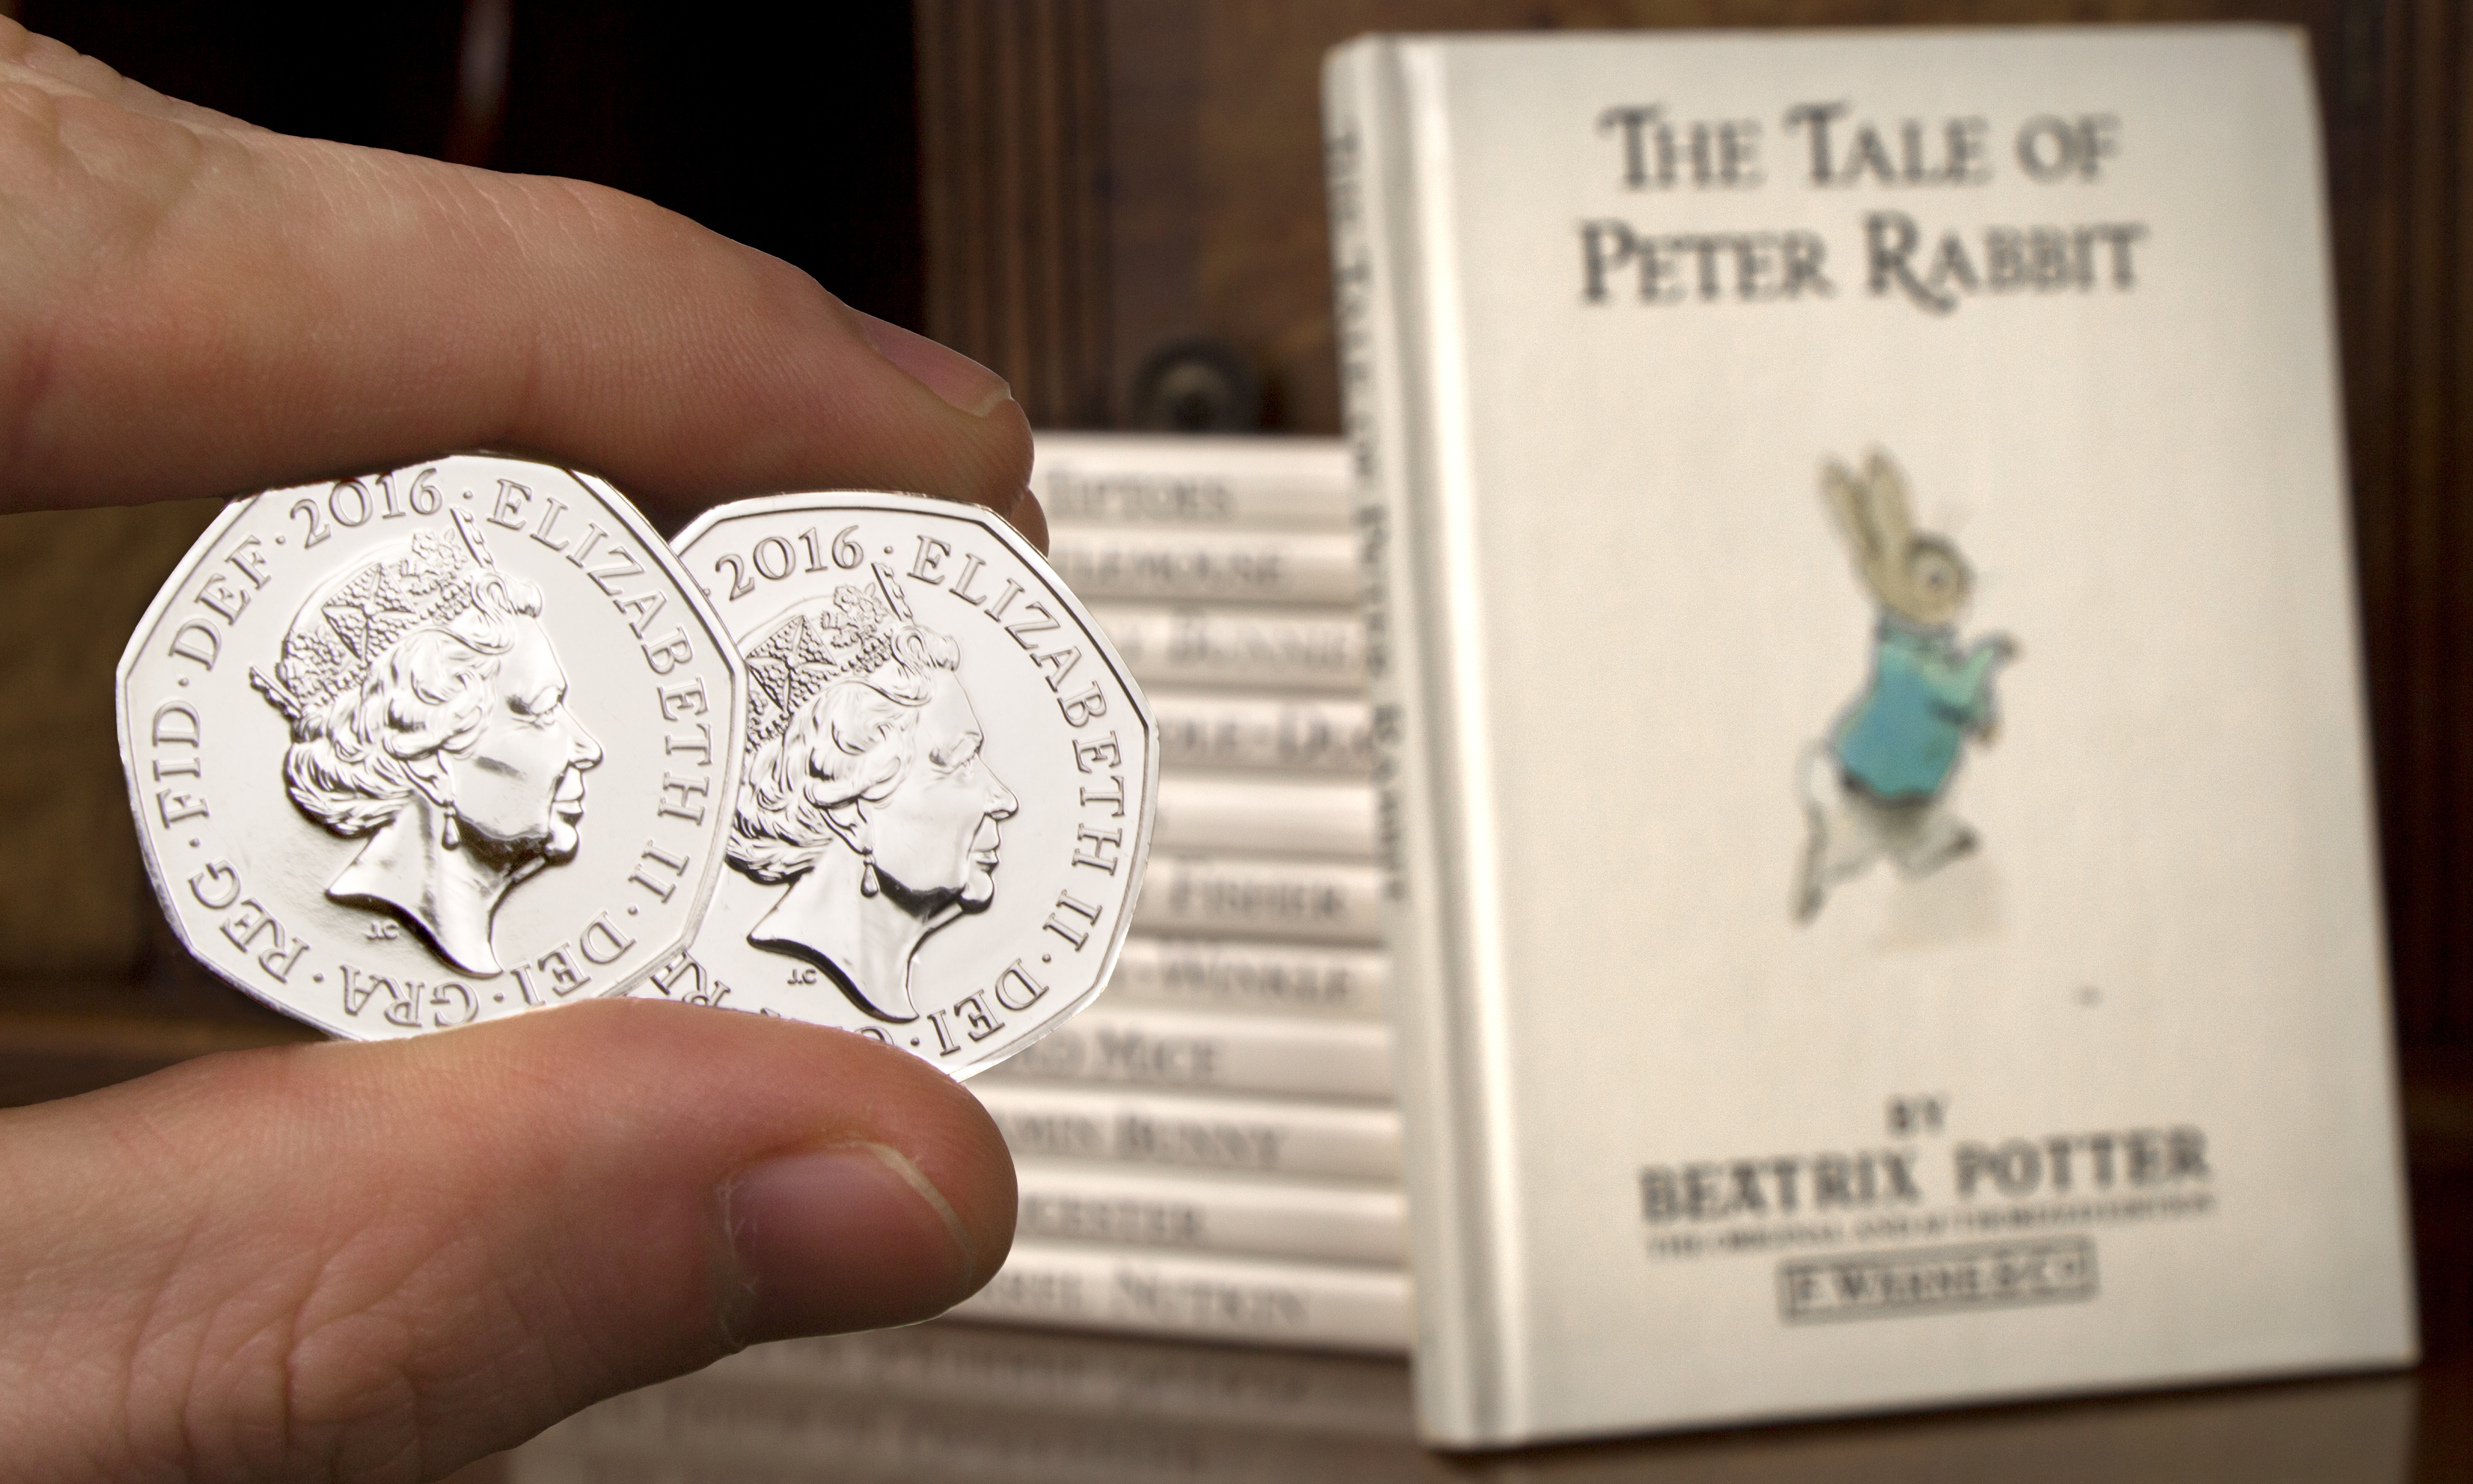 st beatrix potter 50p coins blog image - Beatrix Potter revealed as the latest theme for 2016